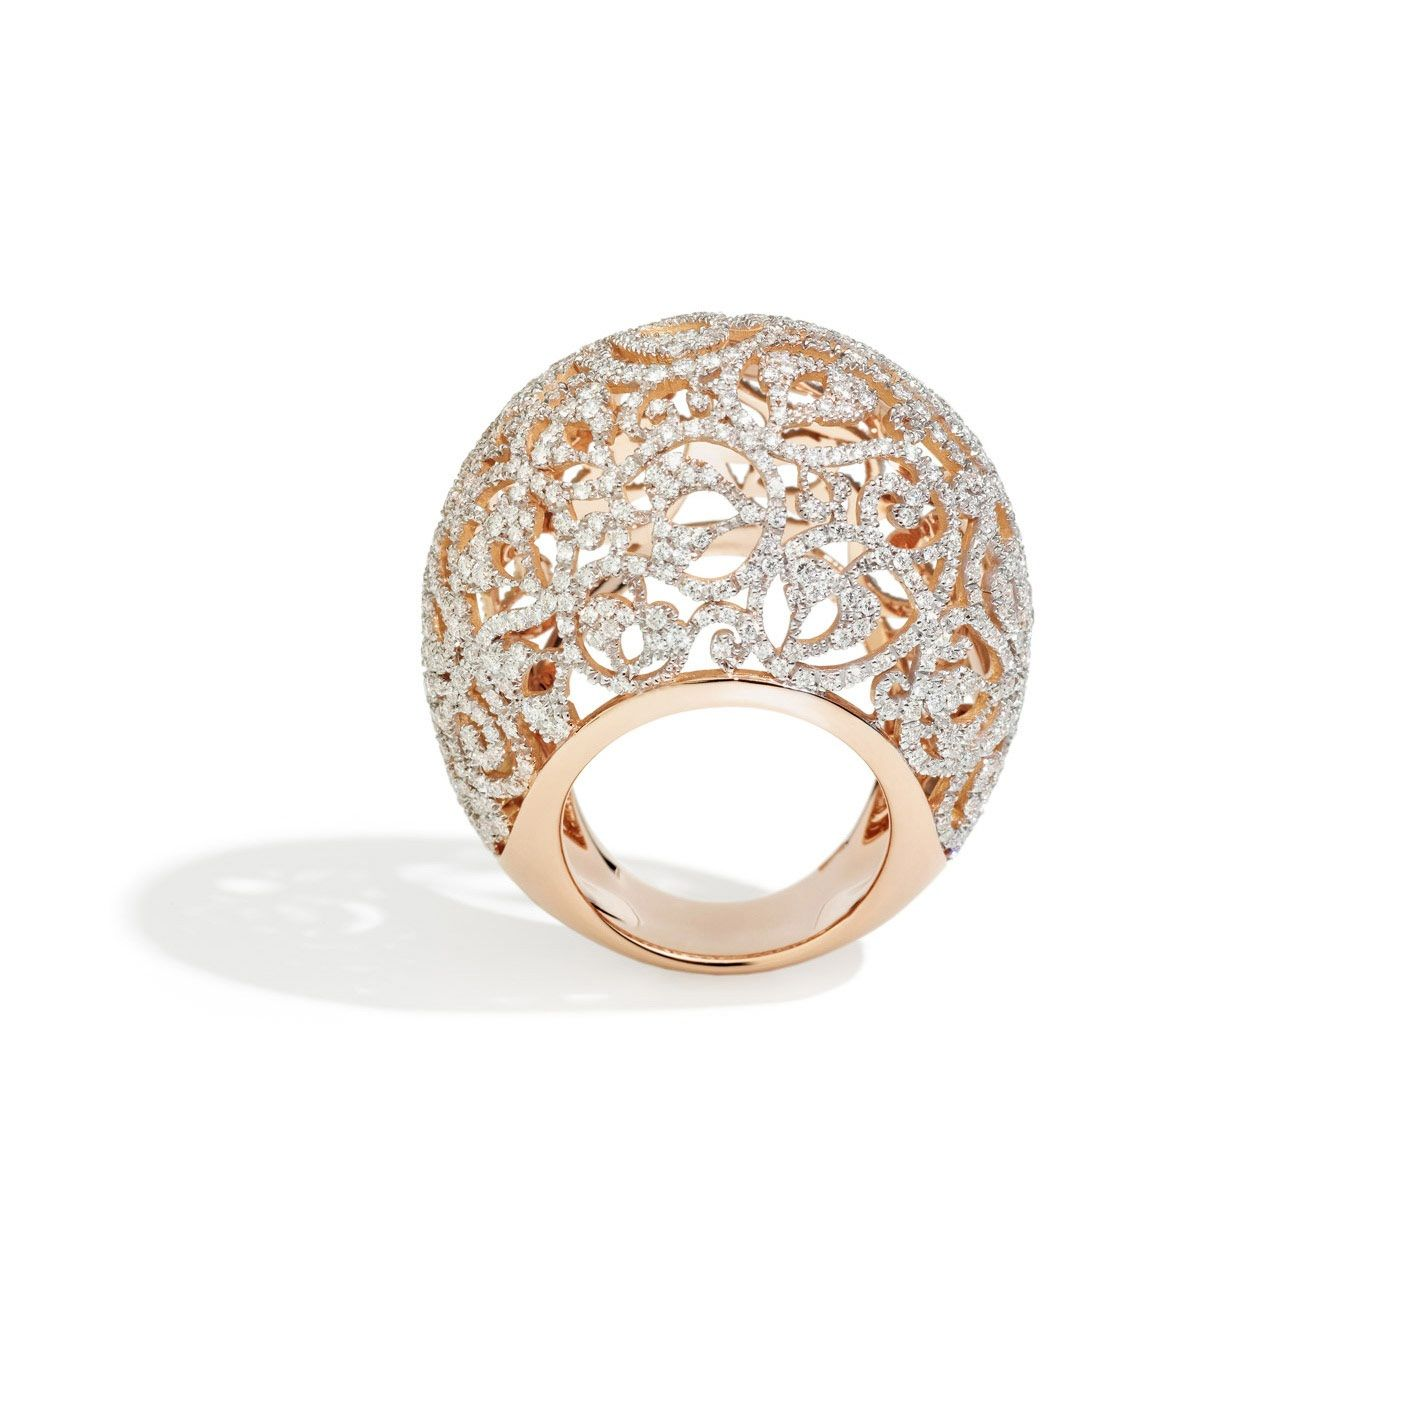 Pomellato's 2014 collection is here! We love this Arabesque Ring in rose gold and diamonds! More eye candy here: http://balharbourshops.com/must-haves/fashion-jewelry